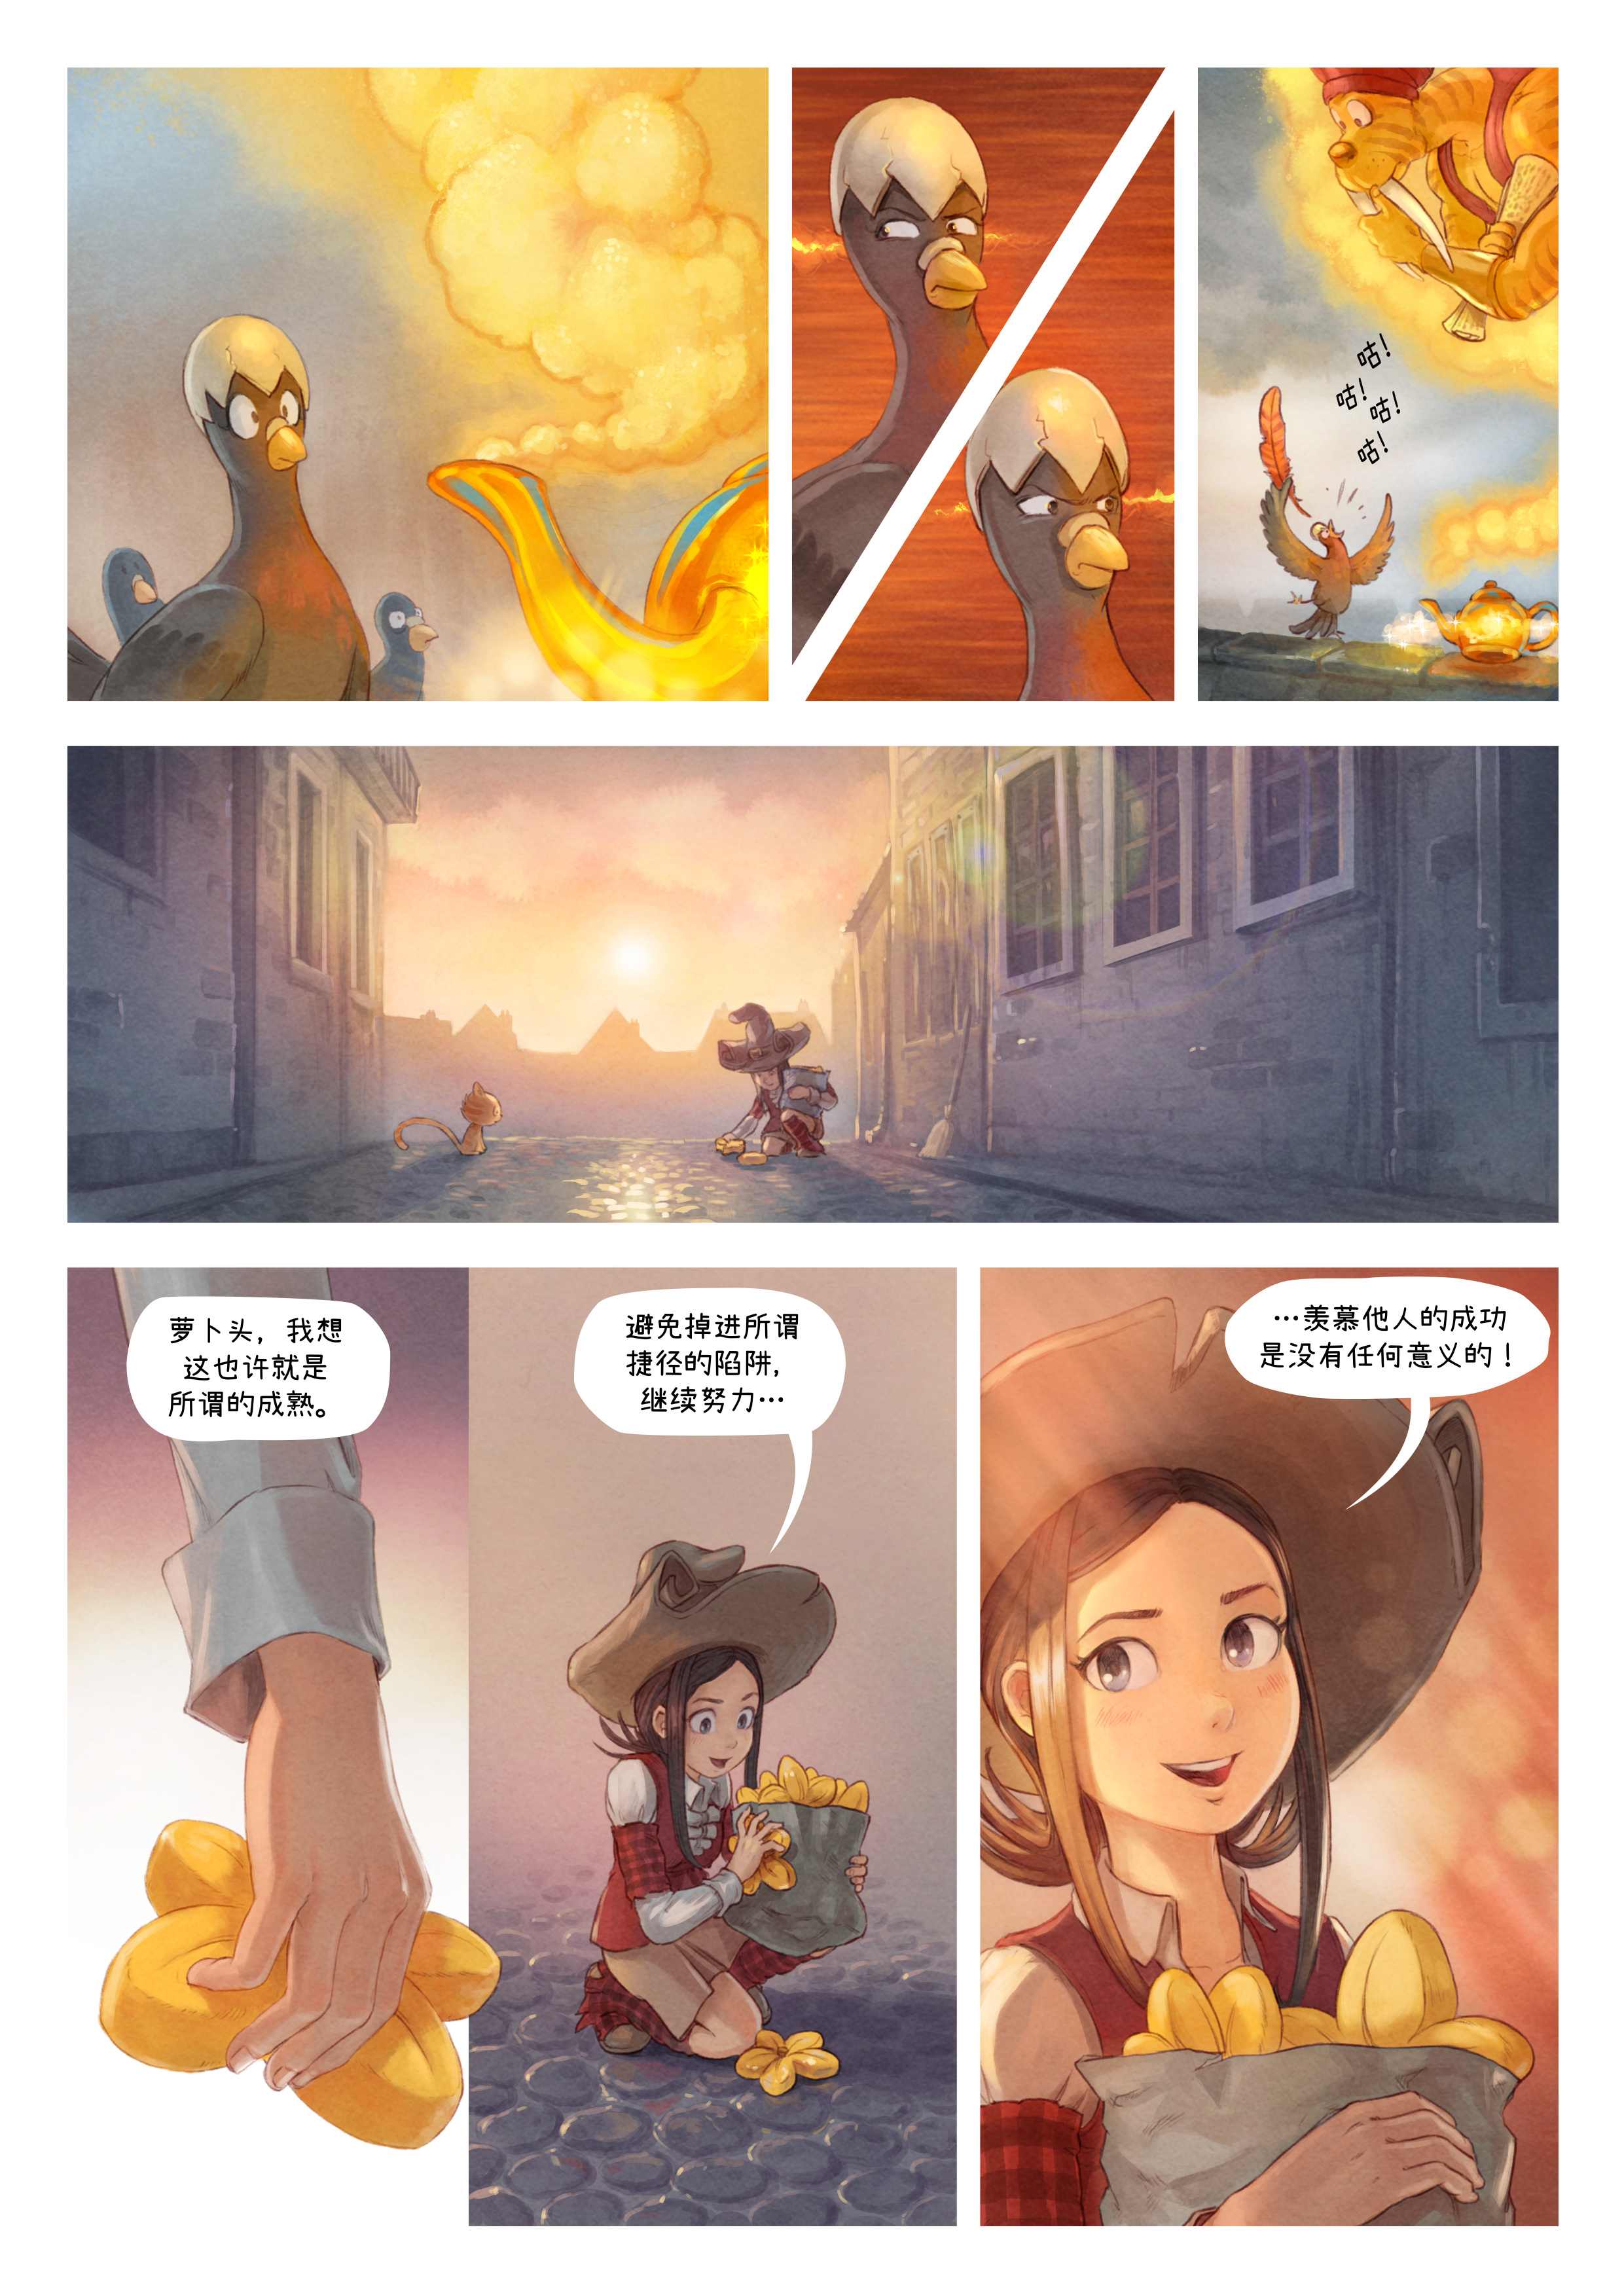 A webcomic page of Pepper&Carrot, 漫画全集 23 [cn], 页面 6